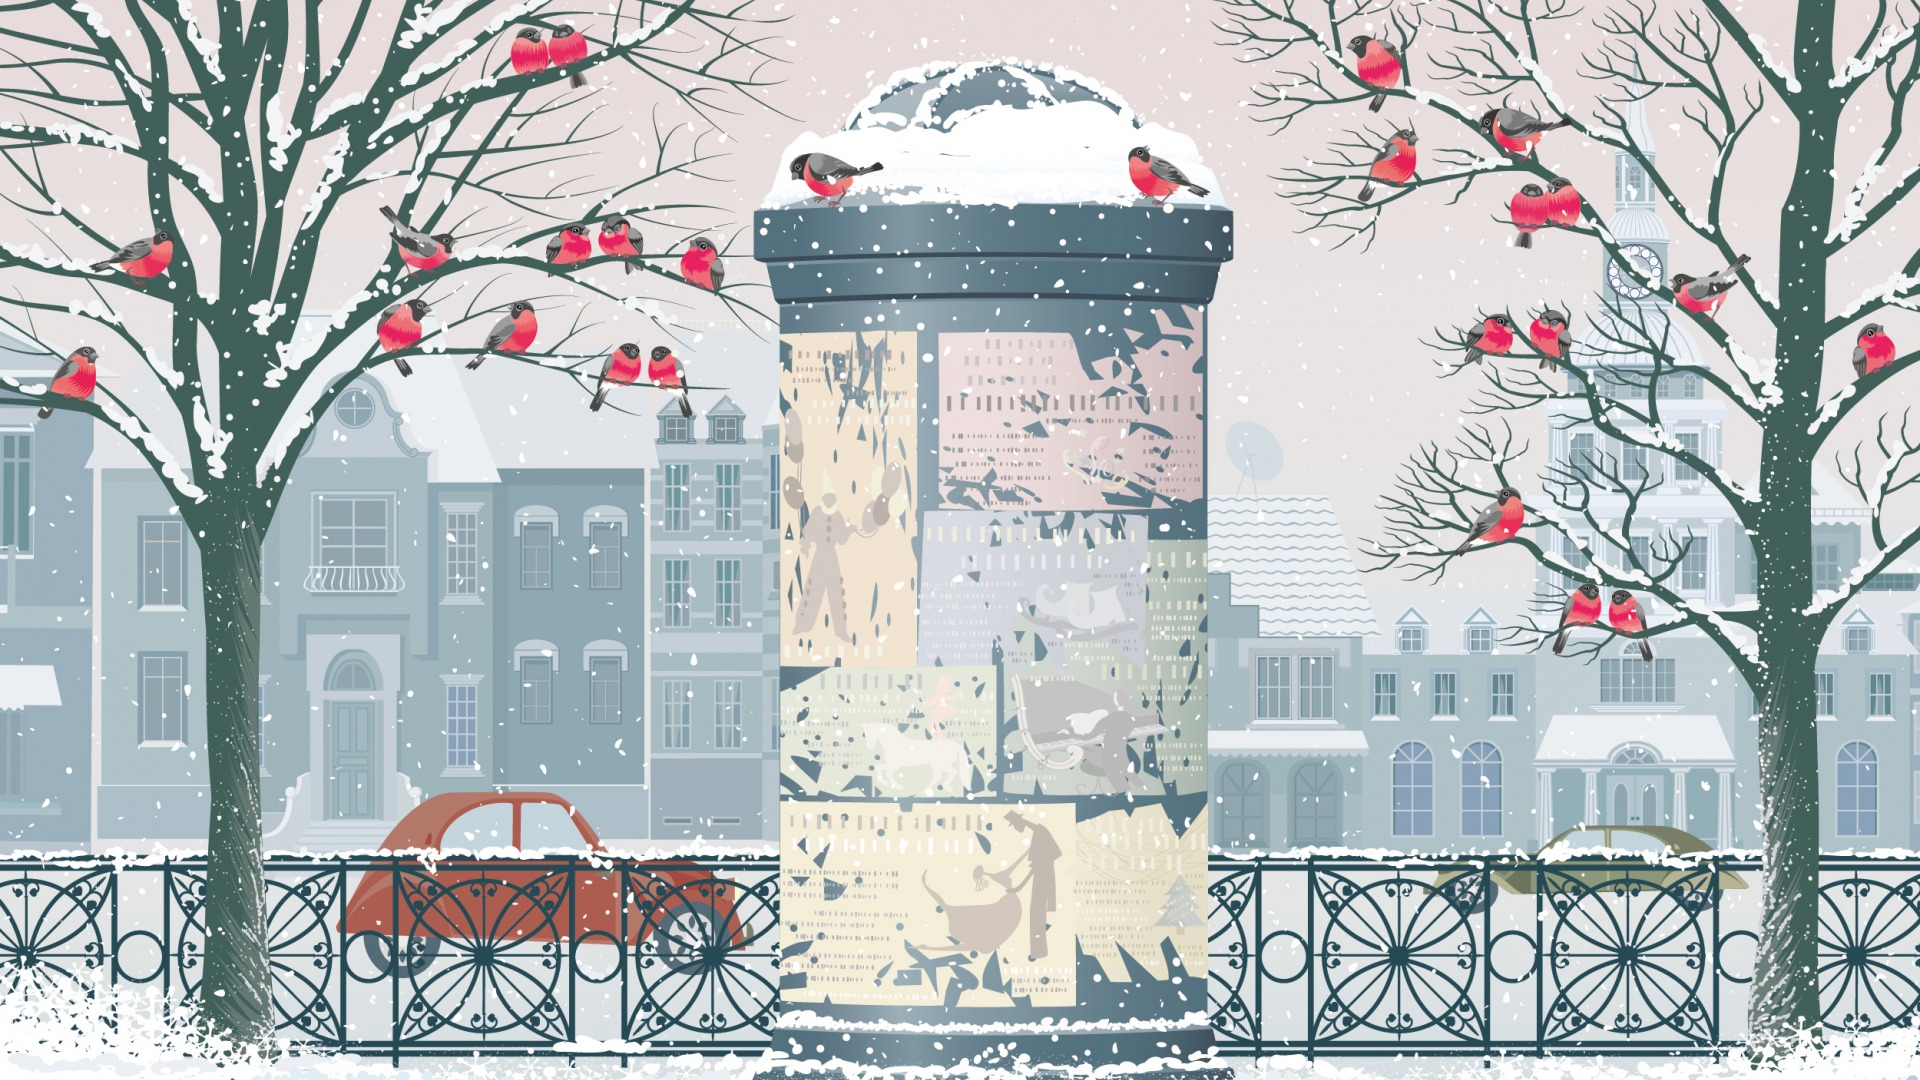 Download-Merry-Christmas-Vector-Birds-section-city-in-resolution-1920x1080-wallpaper-wp3404970